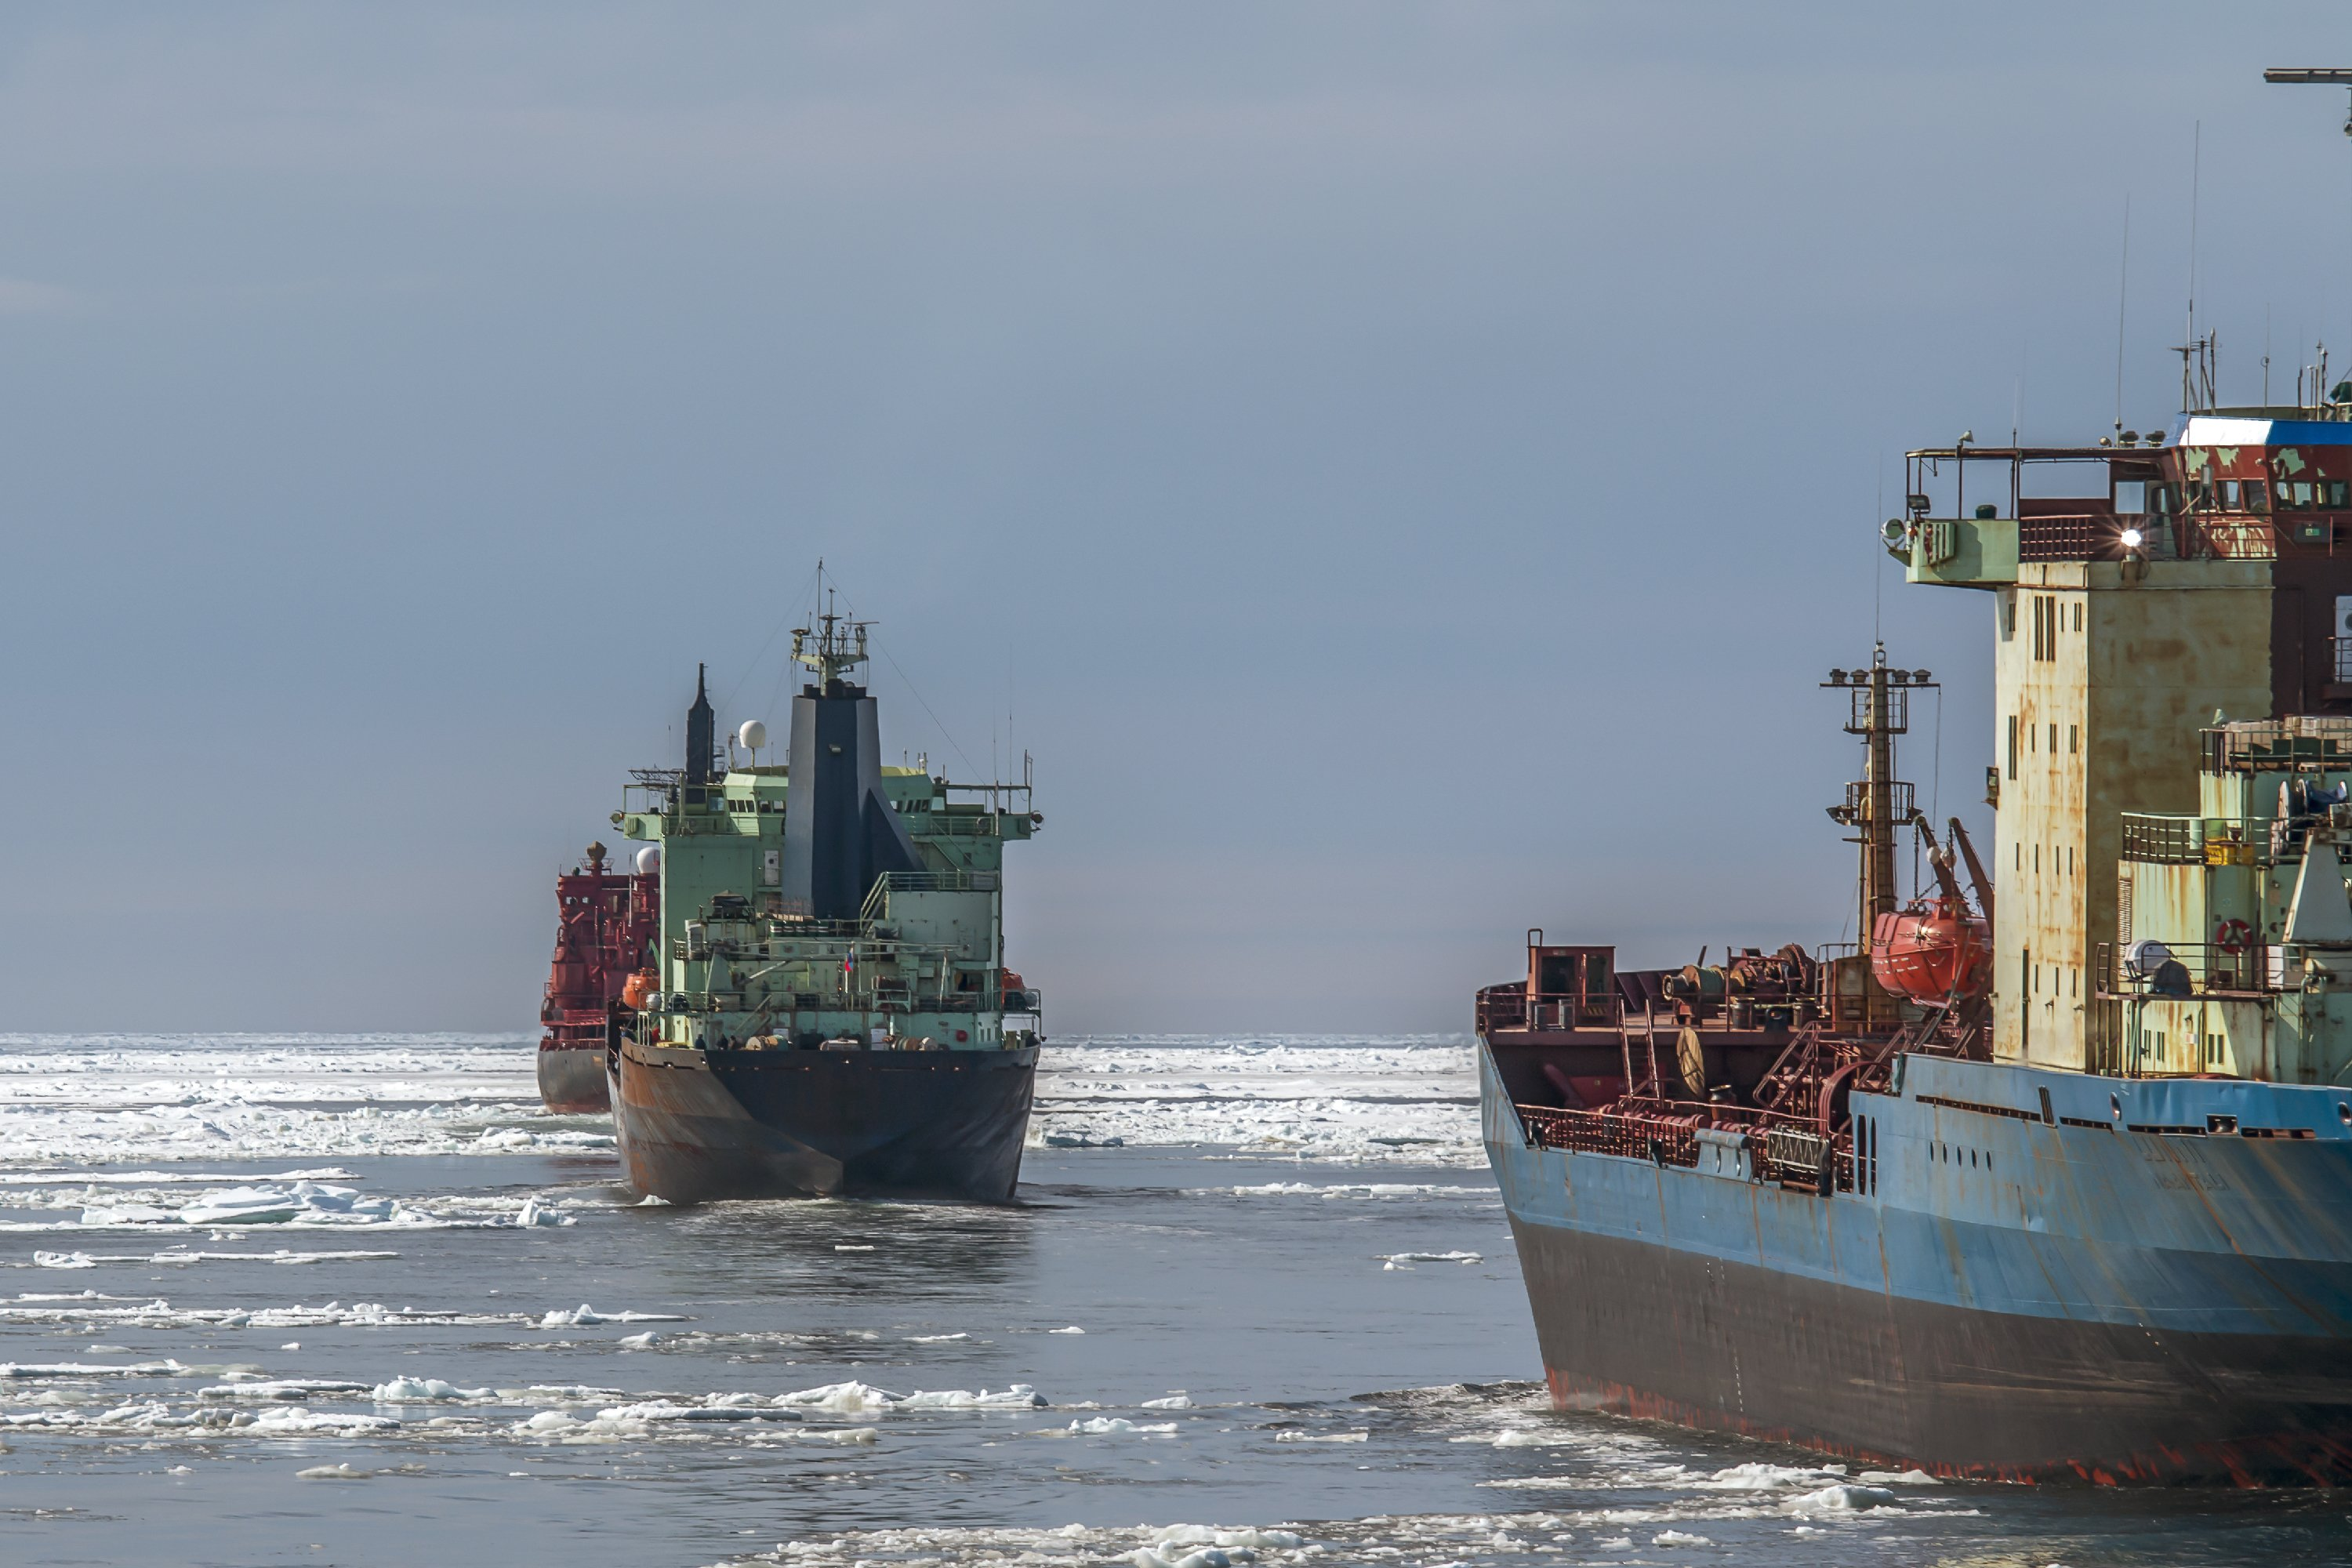 A convoy of tankers sails in the wake of a nuclear-powered icebreaker on Russia's Northern Sea Route. (Getty)